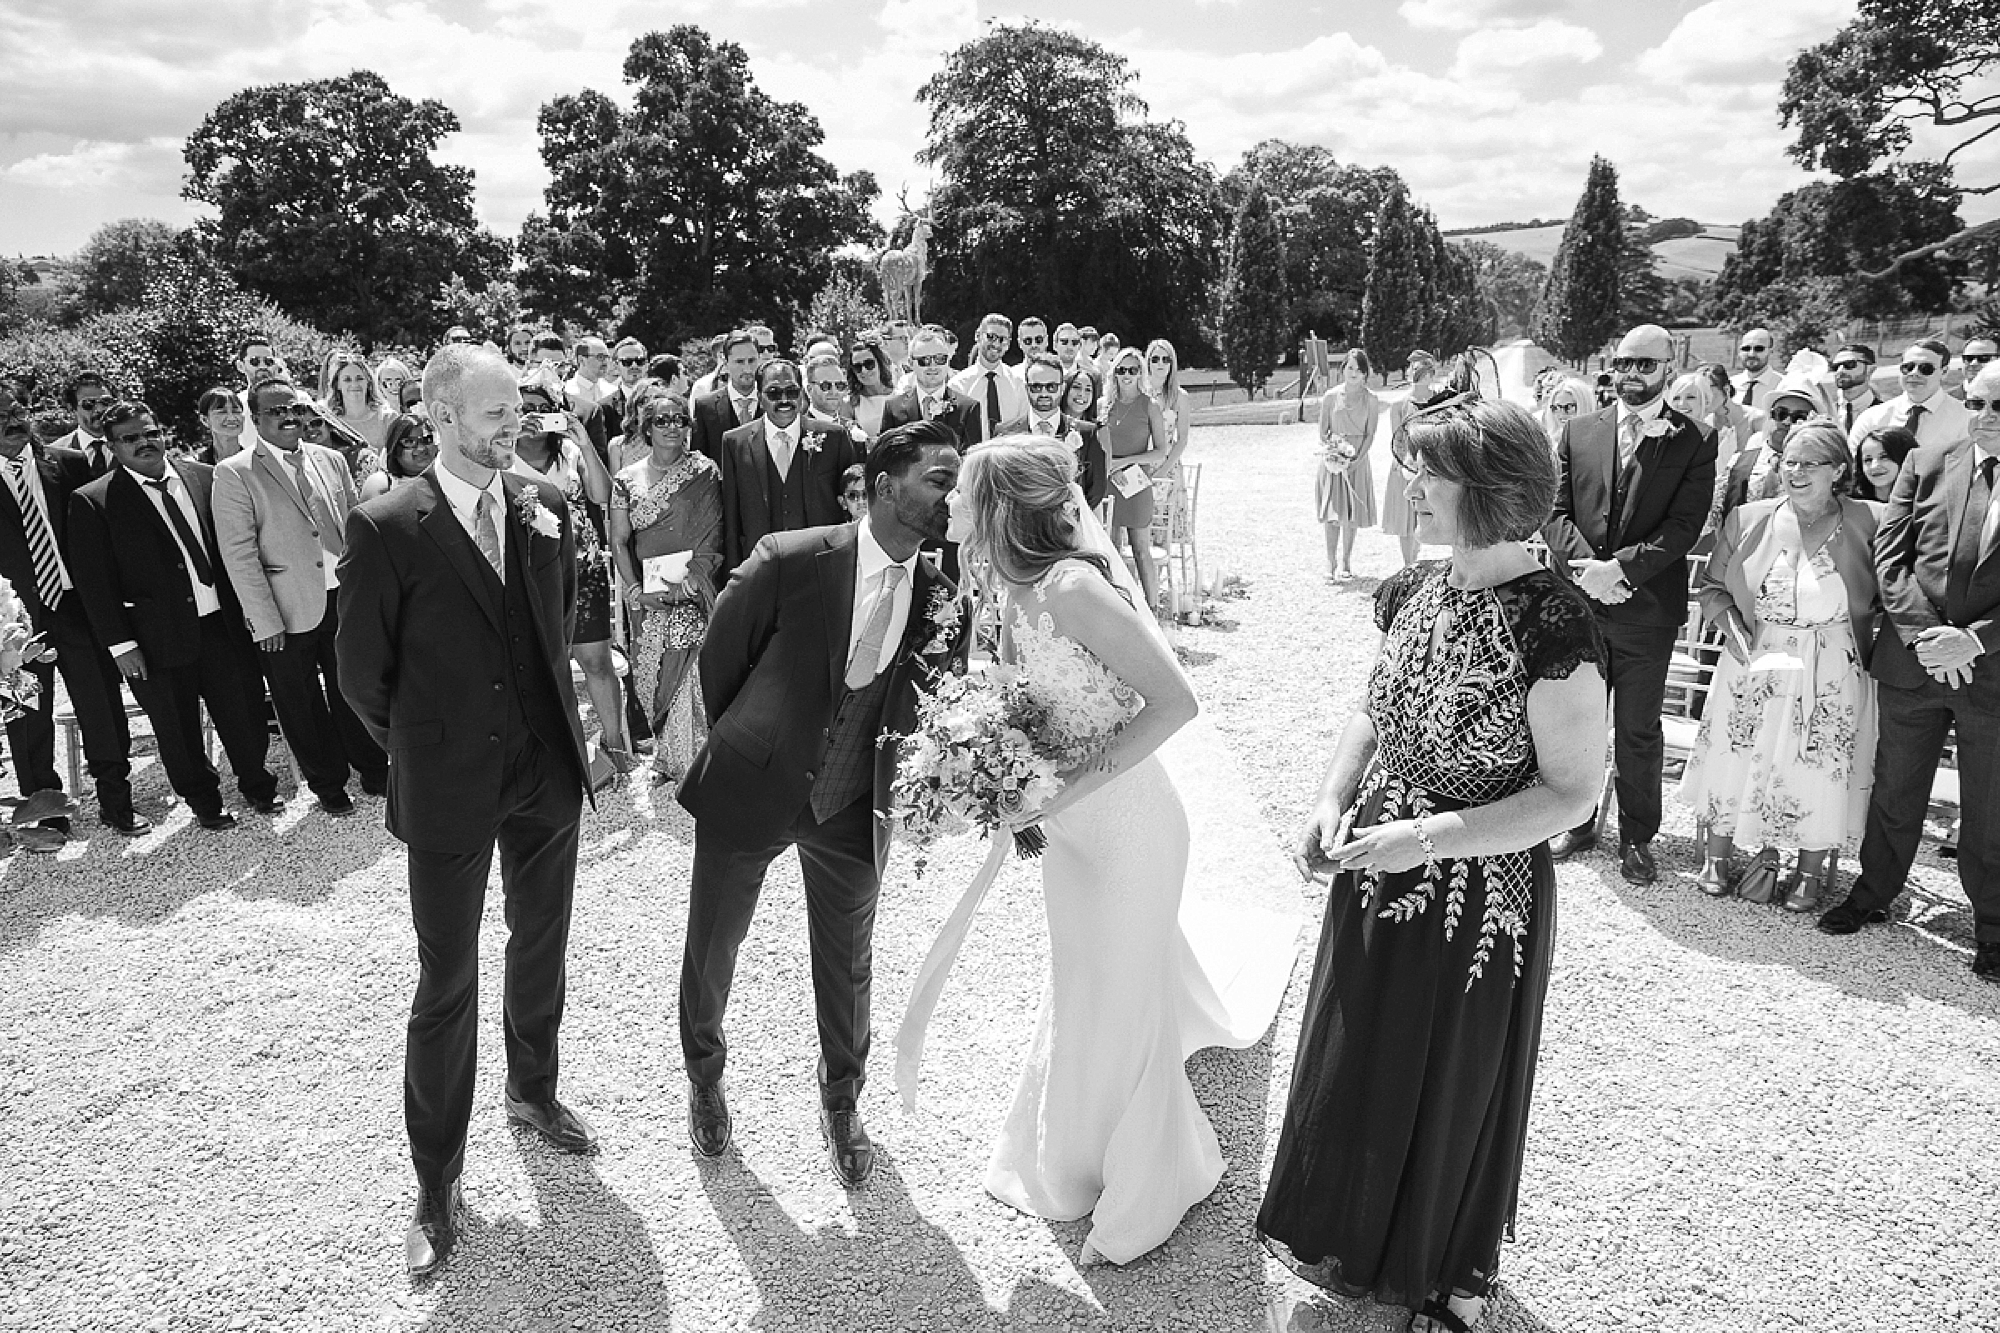 groom kisses bride as she reaches the end of the wedding aisle in outdoor ceremony at Pynes house